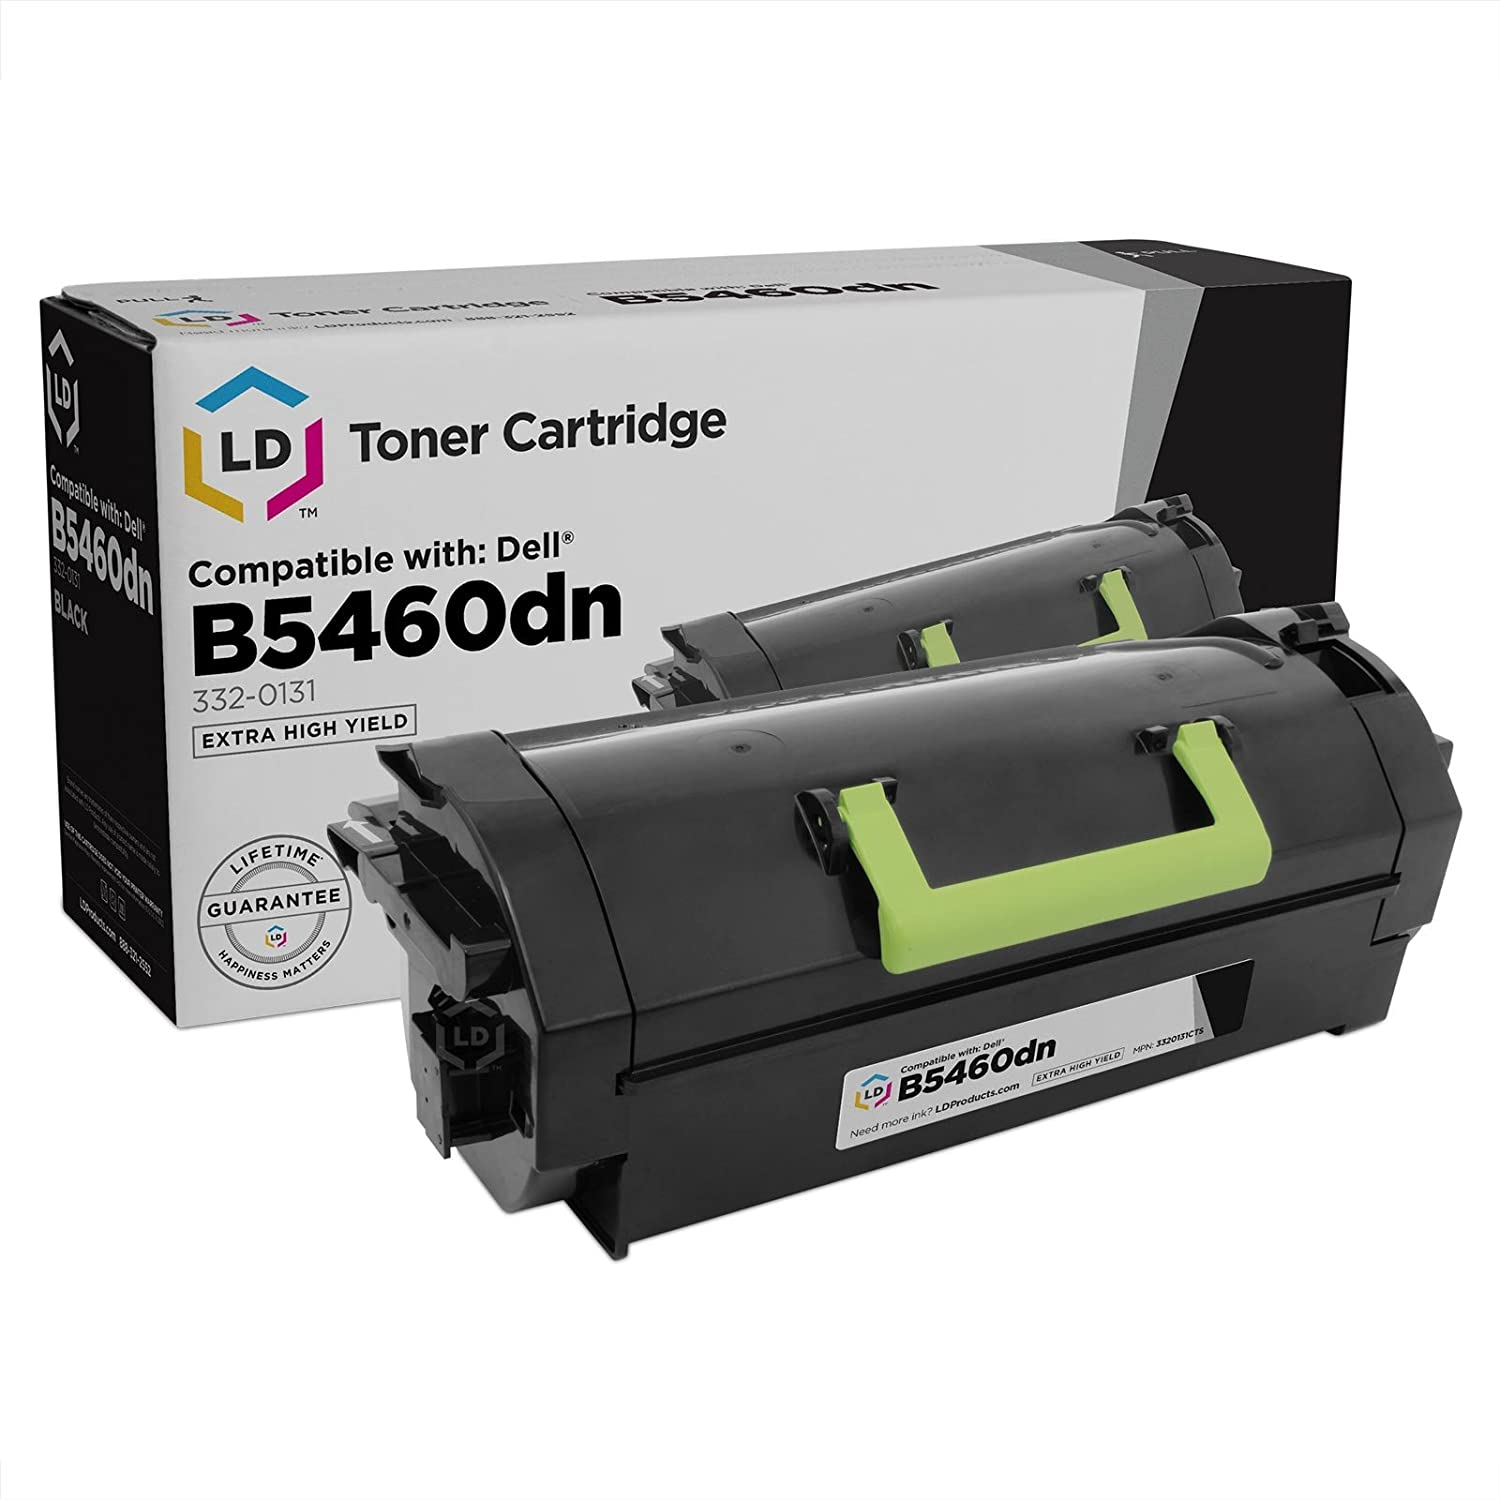 LD Compatible Toner Cartridge Replacement for Dell B5460dn 332-0131 Extra High Yield (Black)